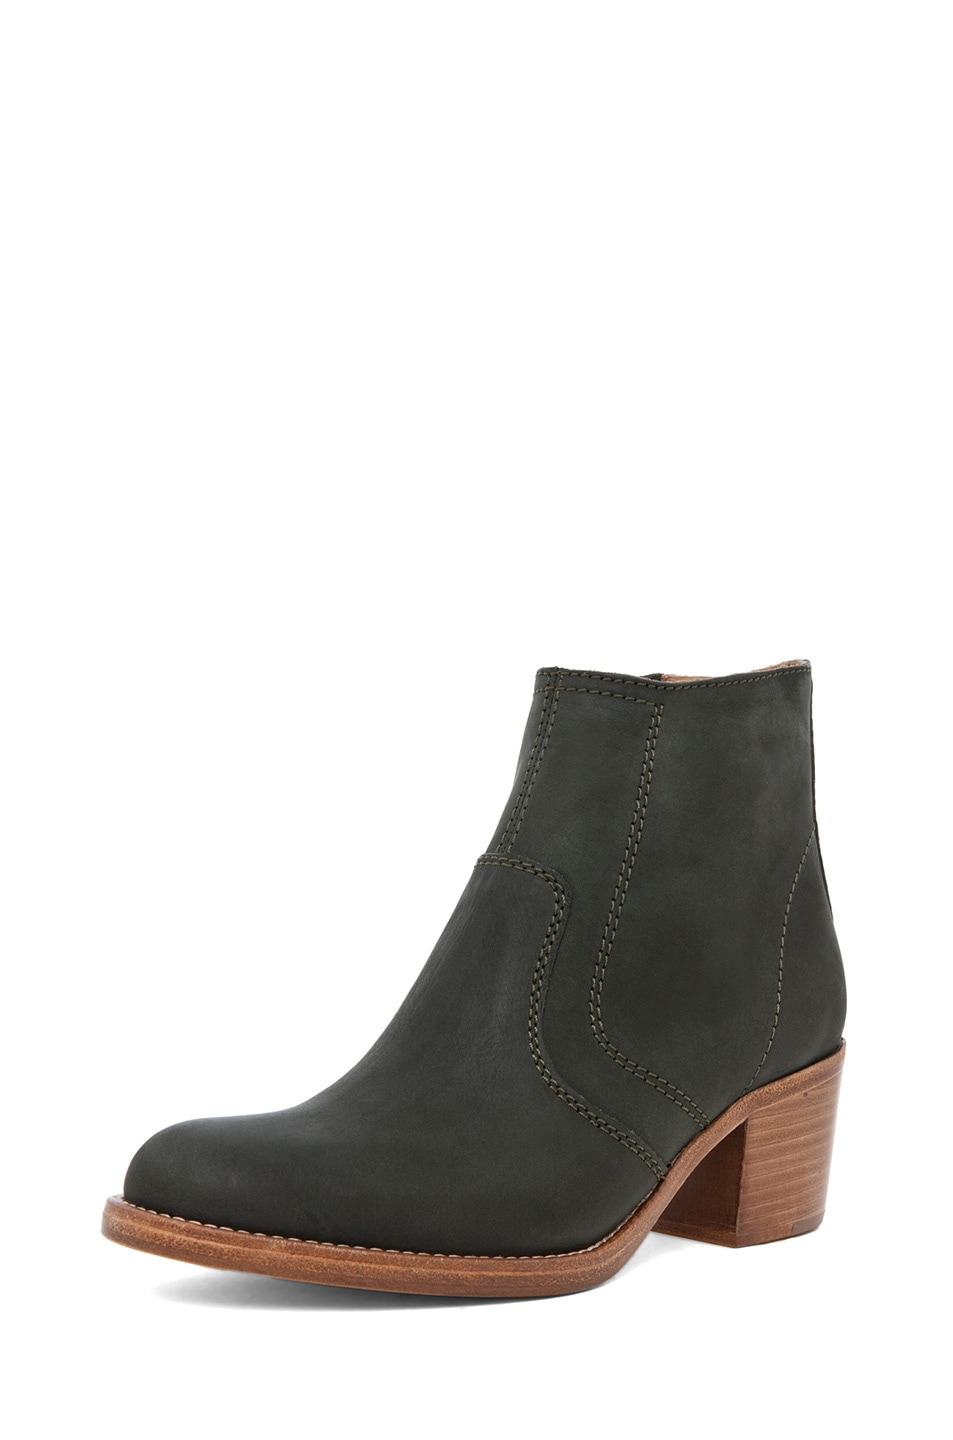 Image 2 of A.P.C. Camarguaise Boot in Vert Fonce